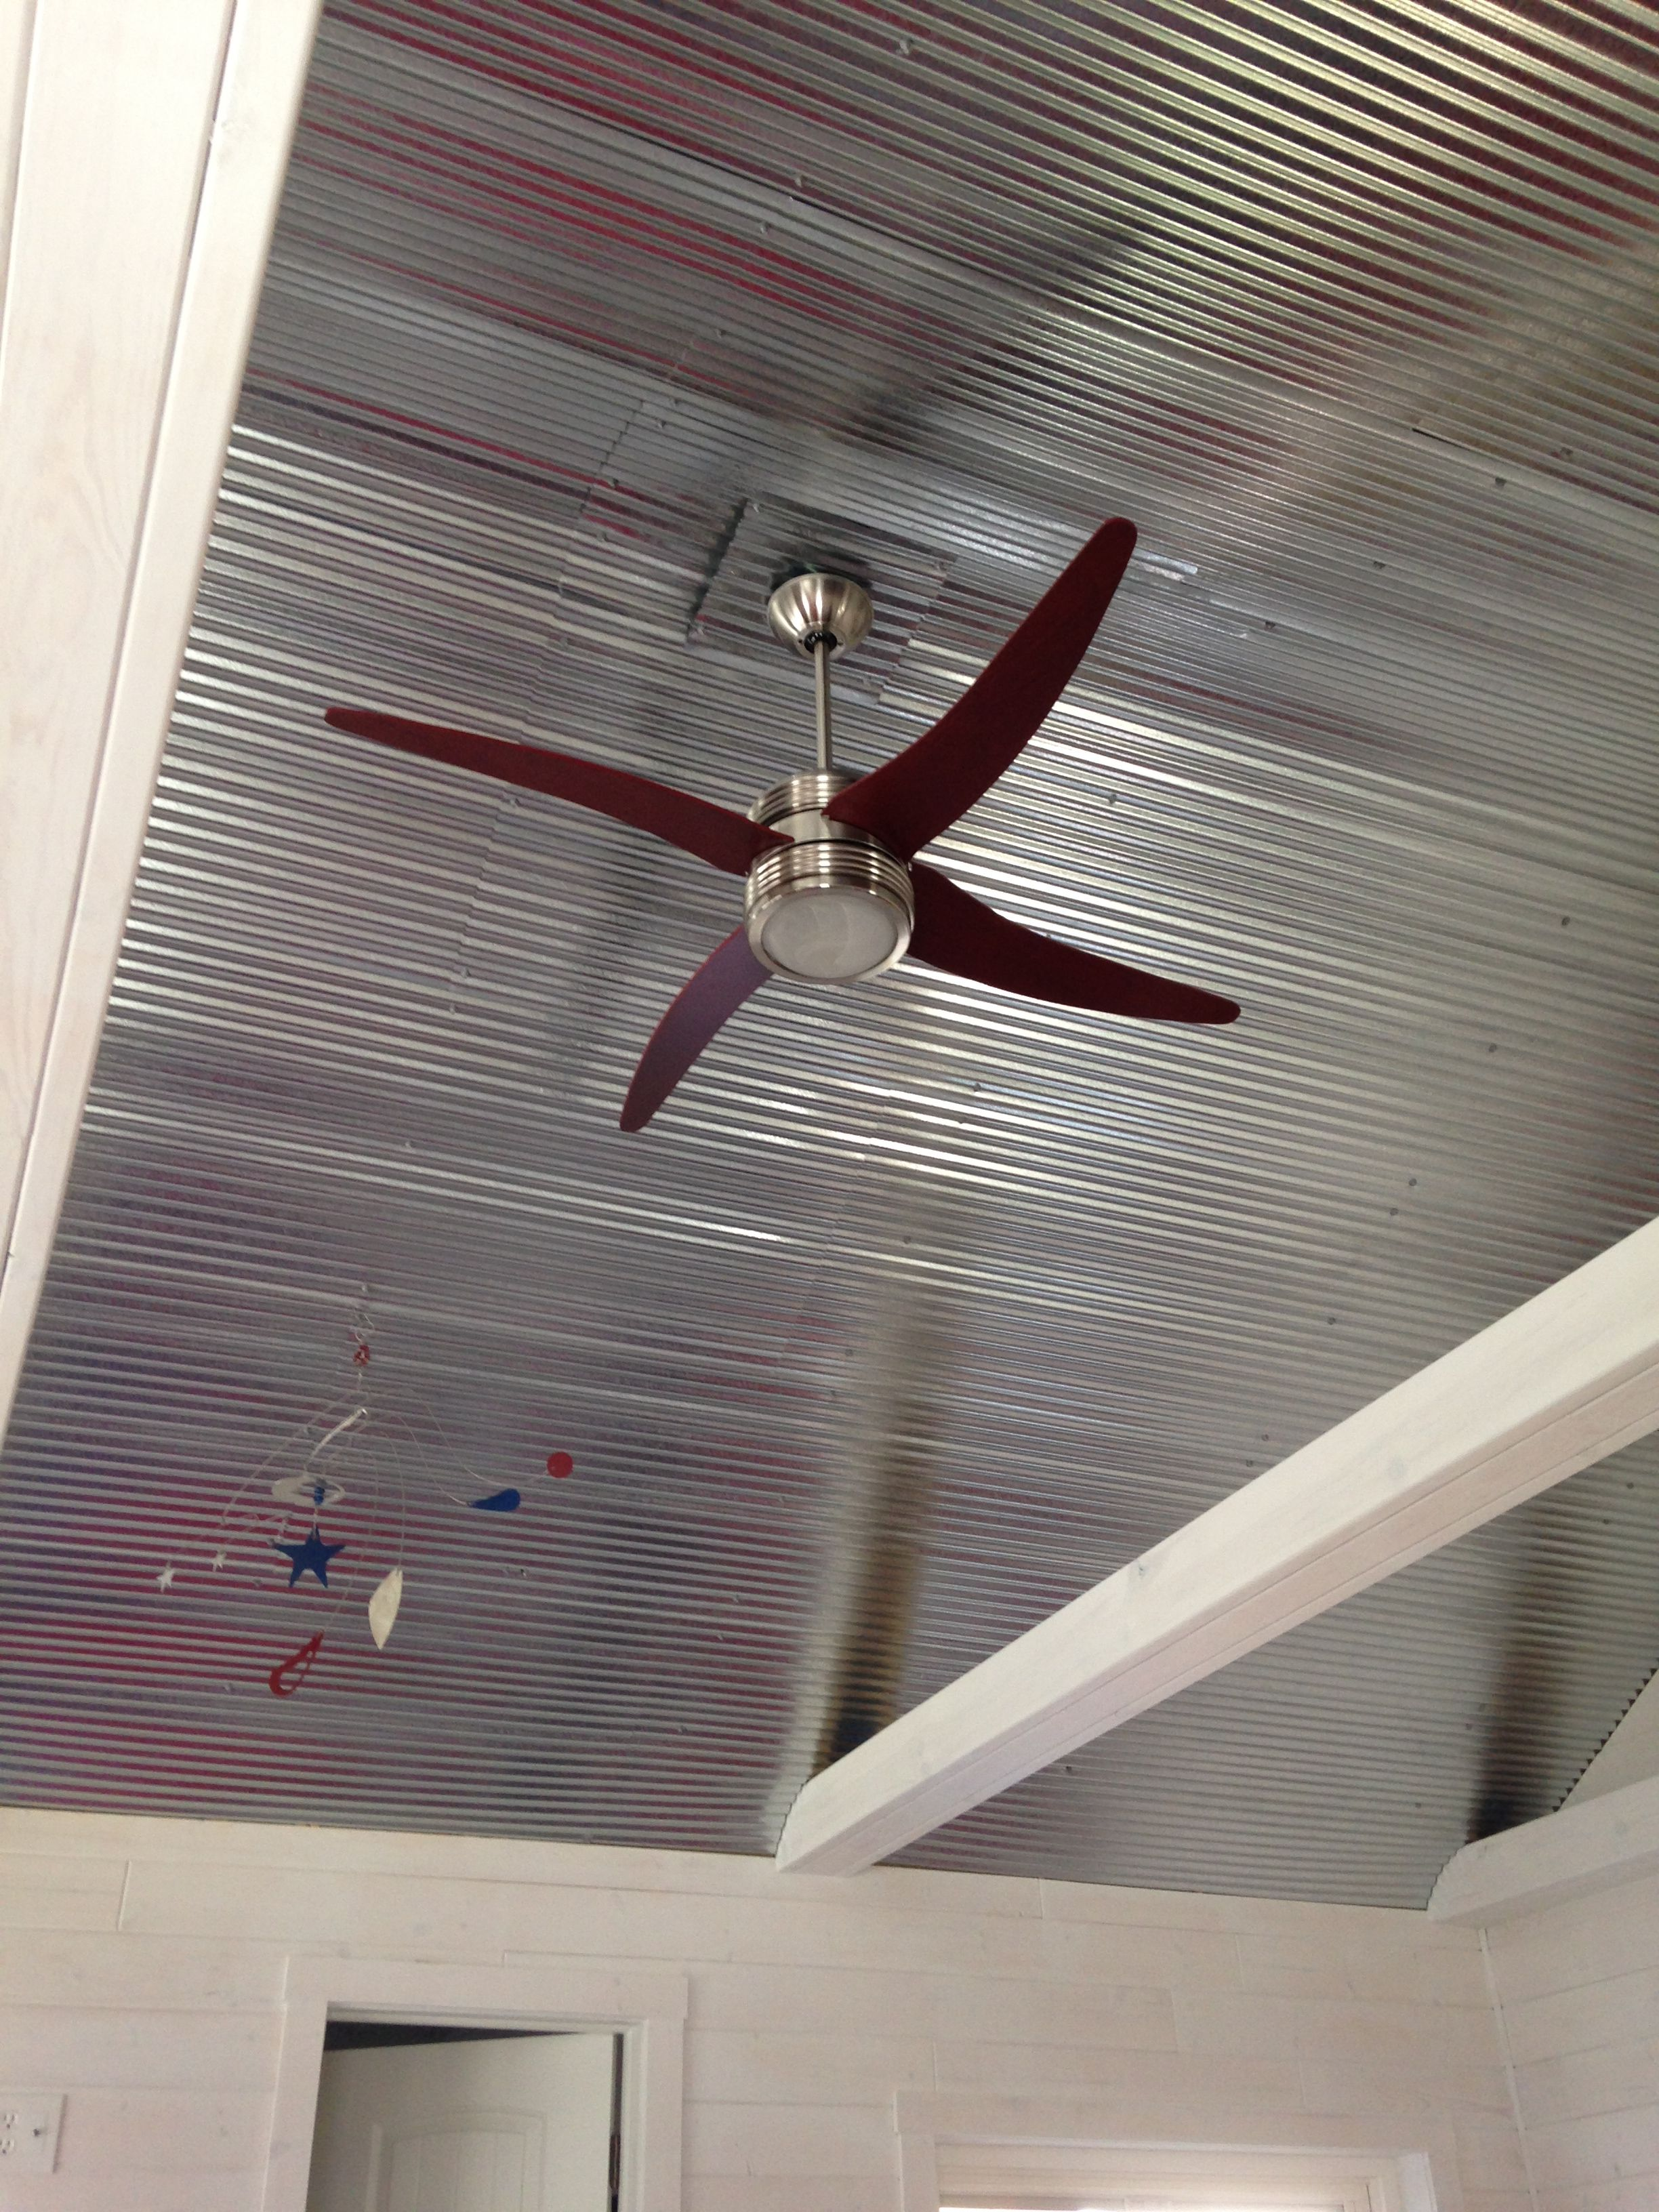 Galvanized Steel Ceilings Never Need Painting Corrugated Tin Ceiling Tin Ceiling Basement Design